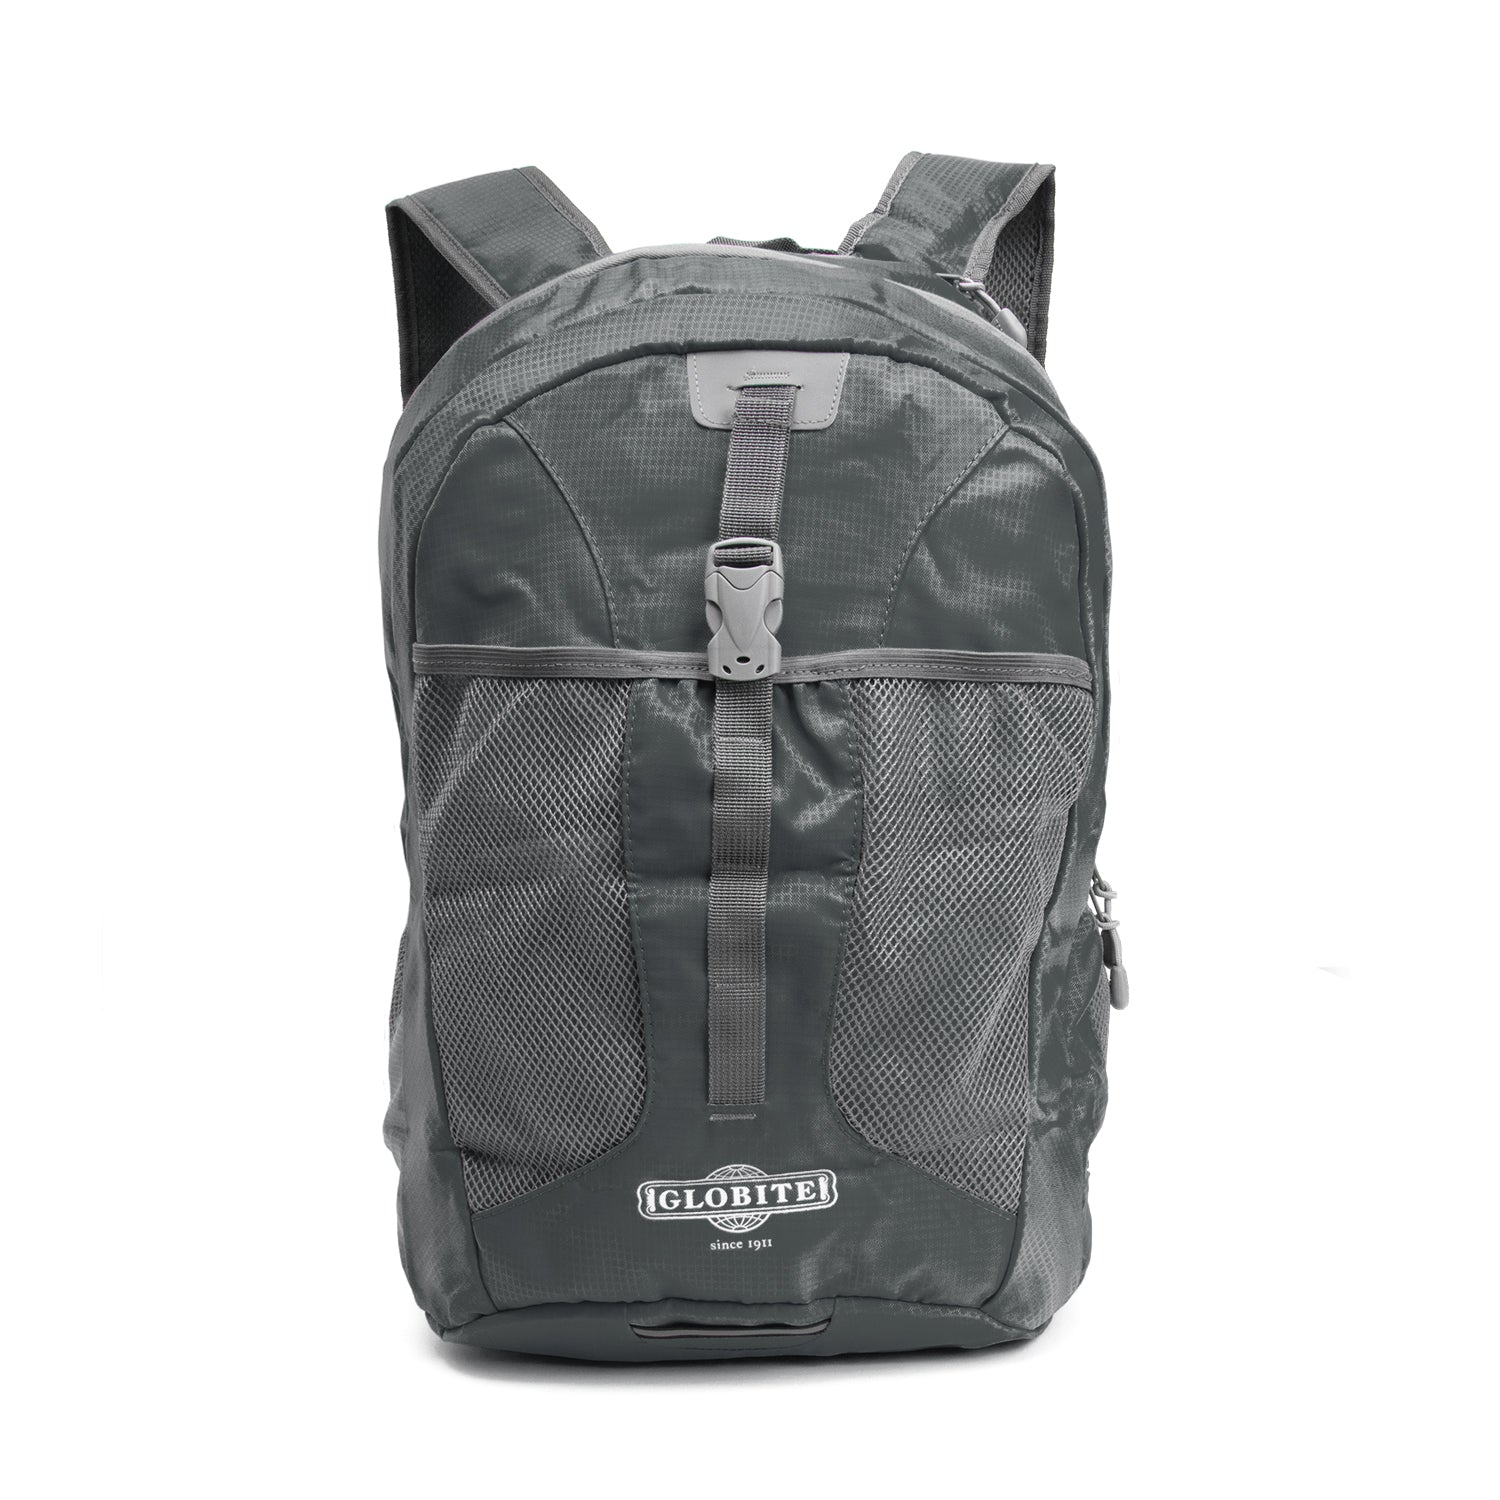 Day Trekker Backpack - Grey - globite